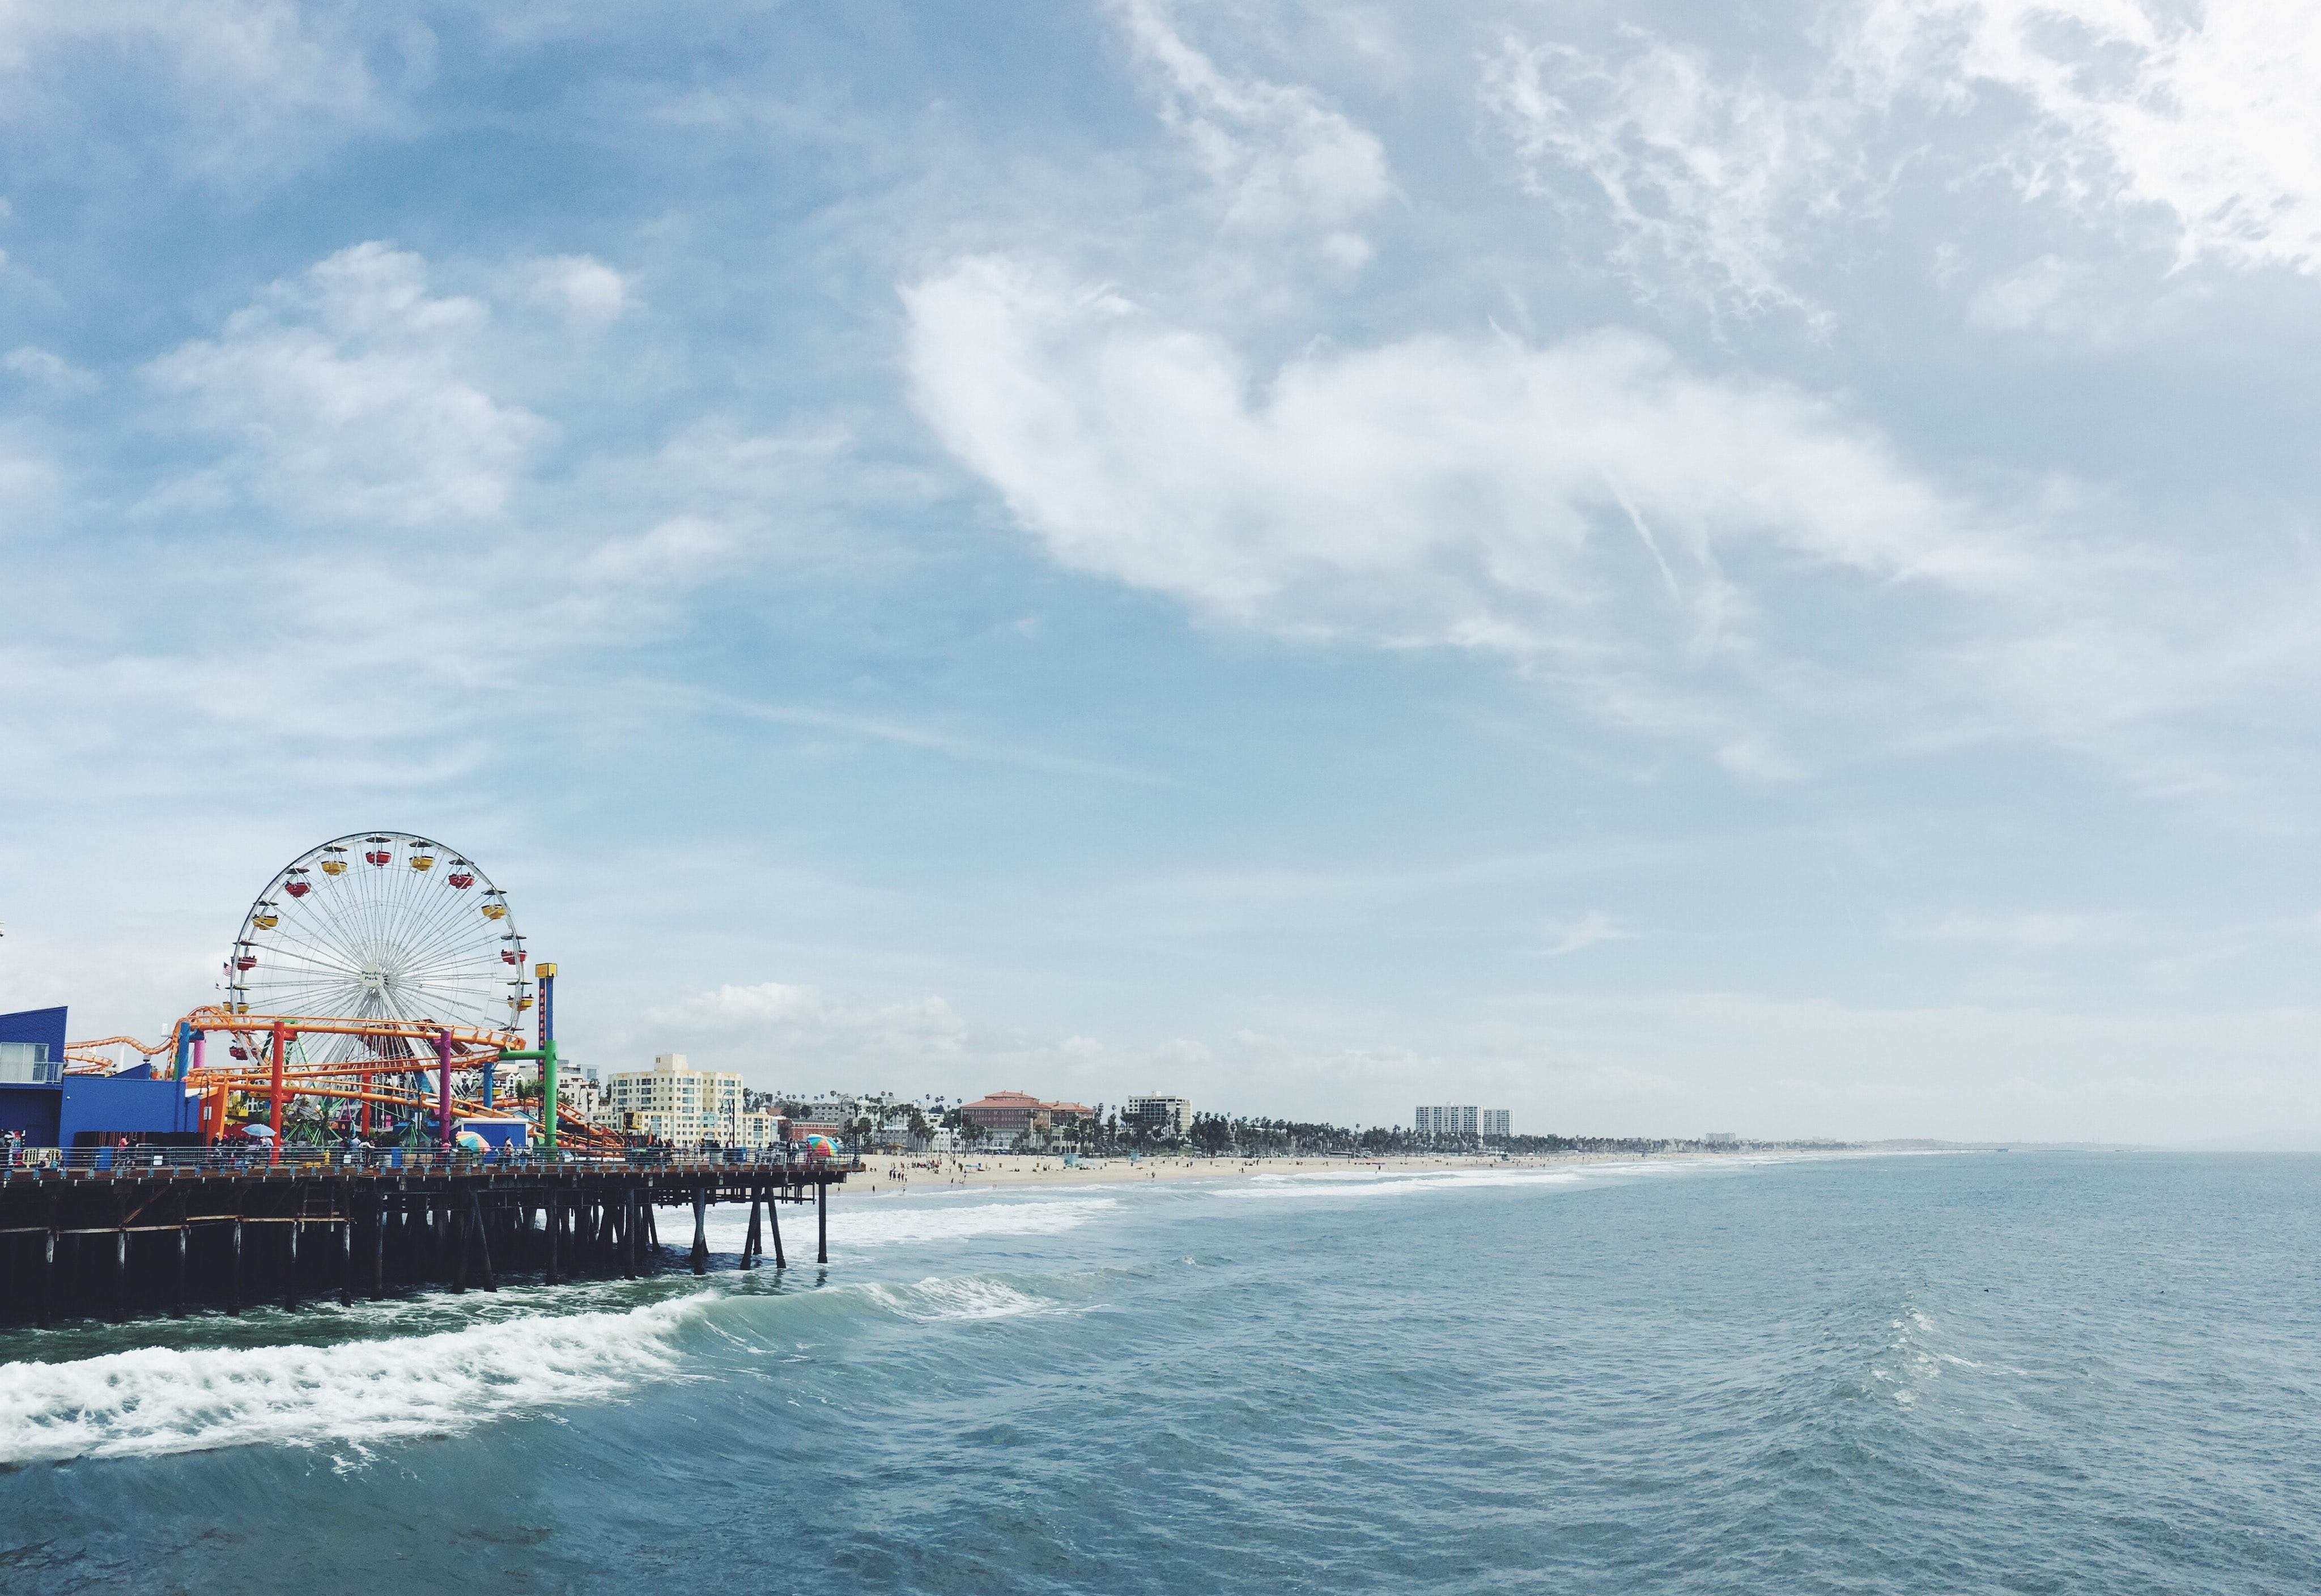 A Ferris wheel and other rides on the Santa Monica pier in California